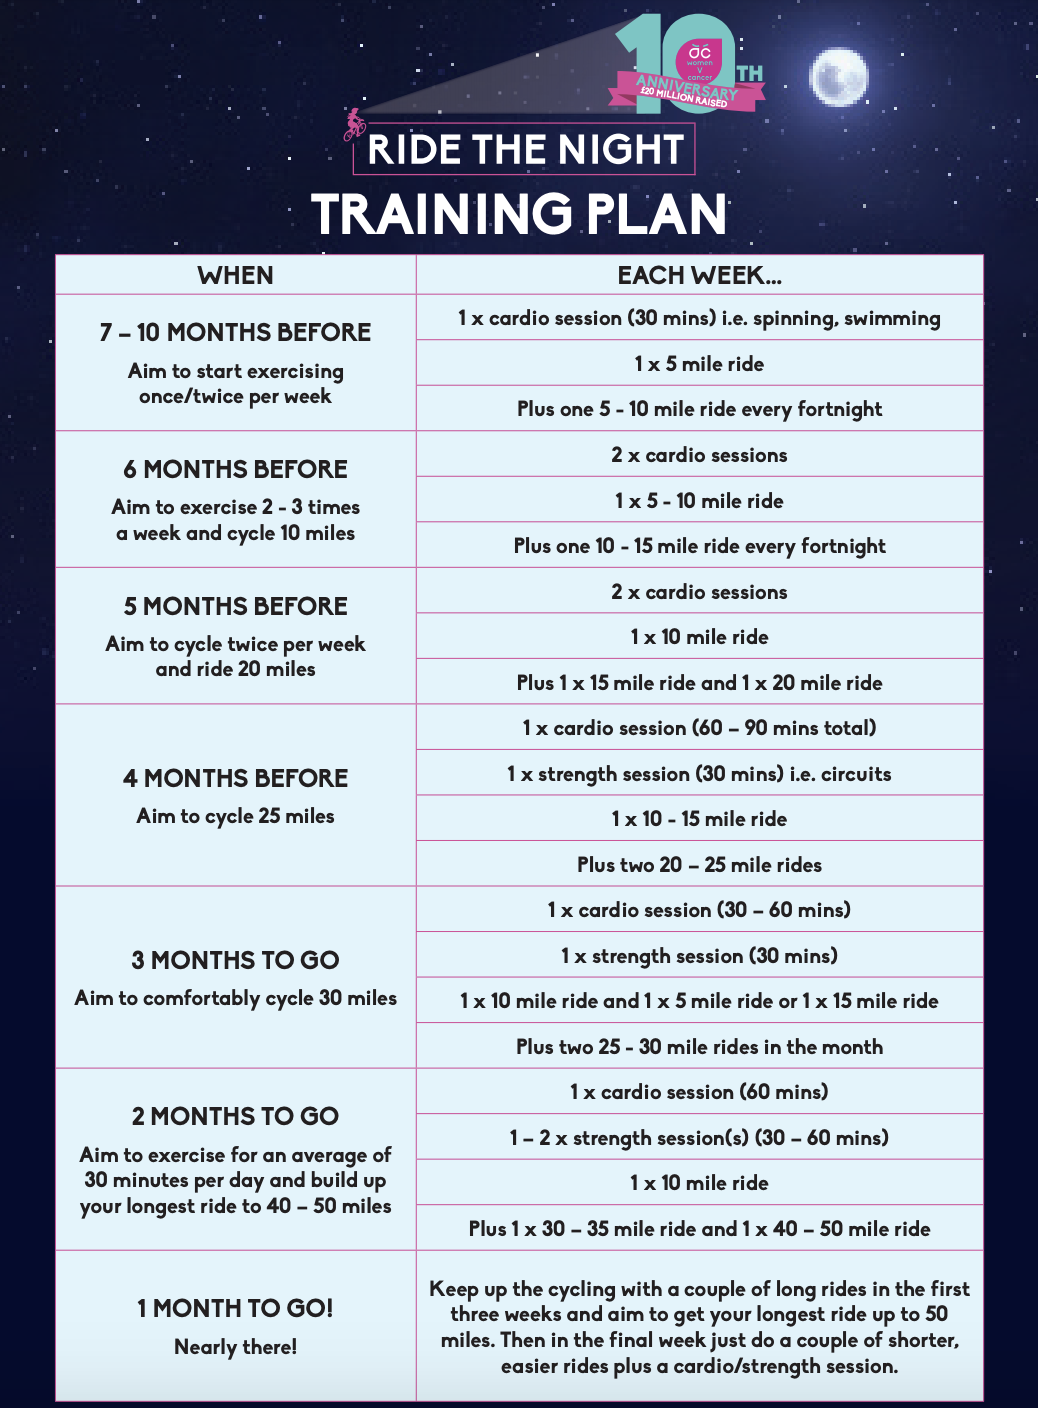 Ride the Night Training Plan